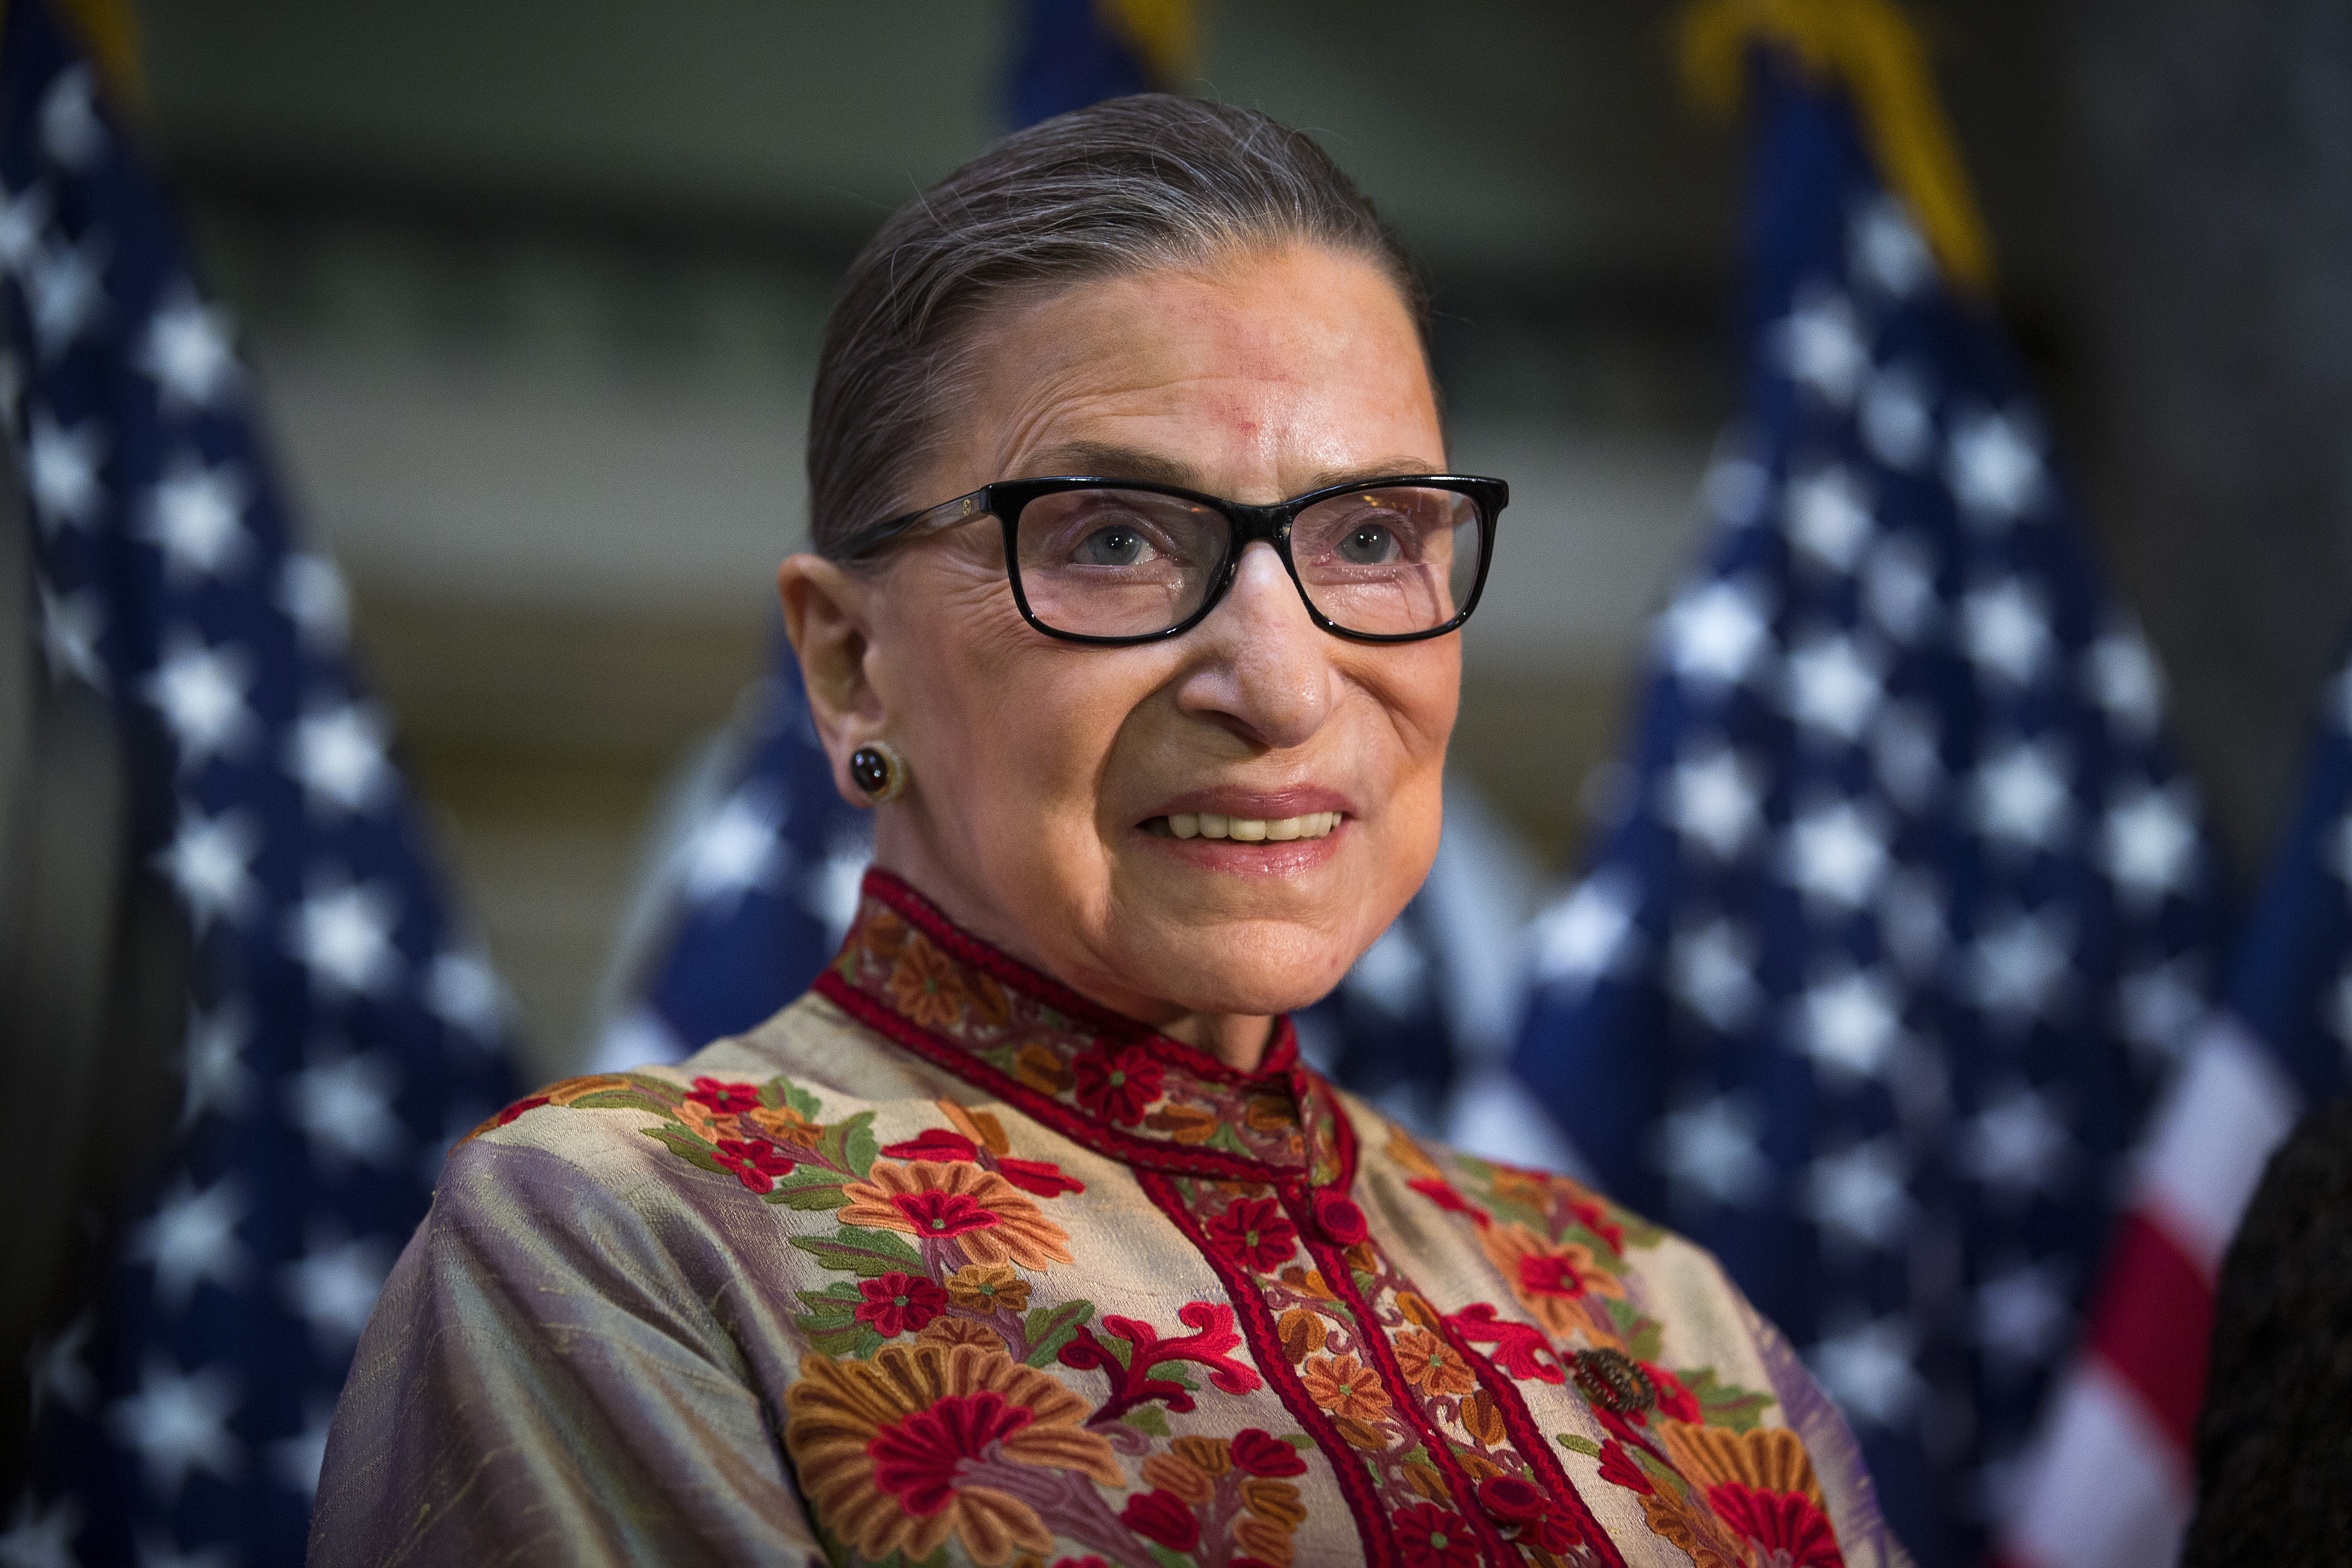 Justice Ruth Bader Ginsburg's criticism of Donald Trump, the presumptive Republican presidential nominee, was highly inappropriate. (New York Times file photo)